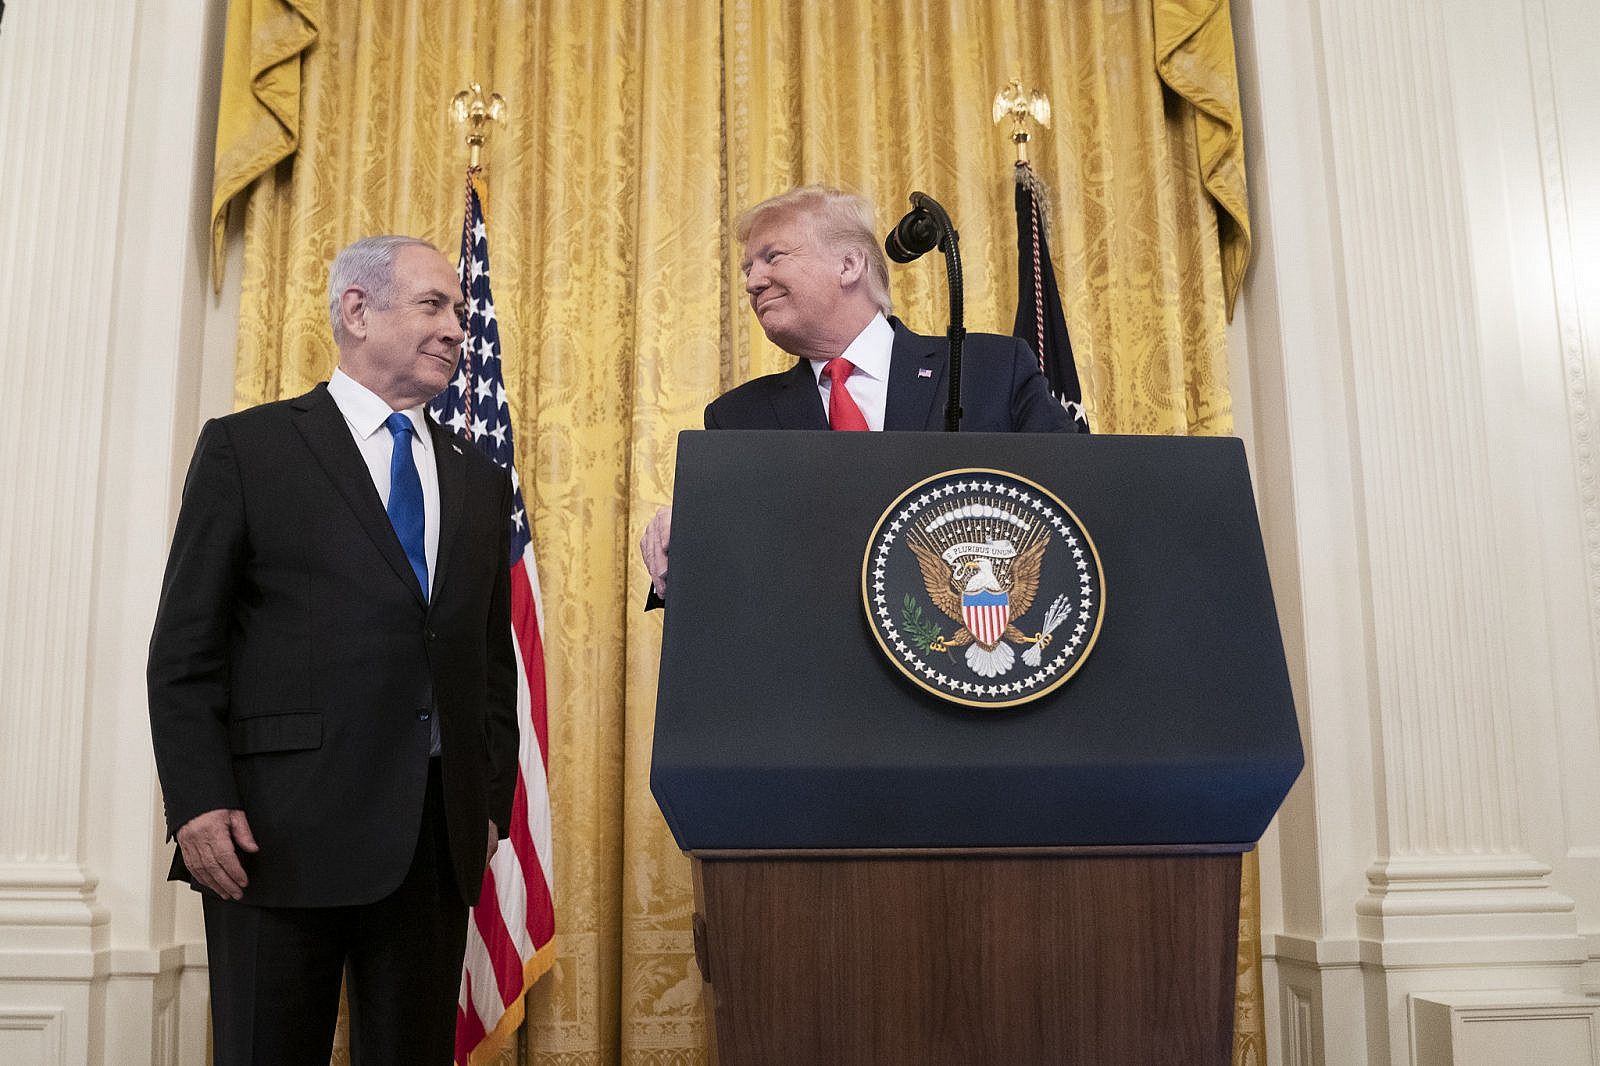 President Donald Trump delivers remarks with Israeli Prime Minister Benjamin Netanyahu in the East Room of the White House to unveil the Trump administration's Middle East Peace Plan. Jan. 28, 2020. (Official White House Photo/Shealah Craighead)